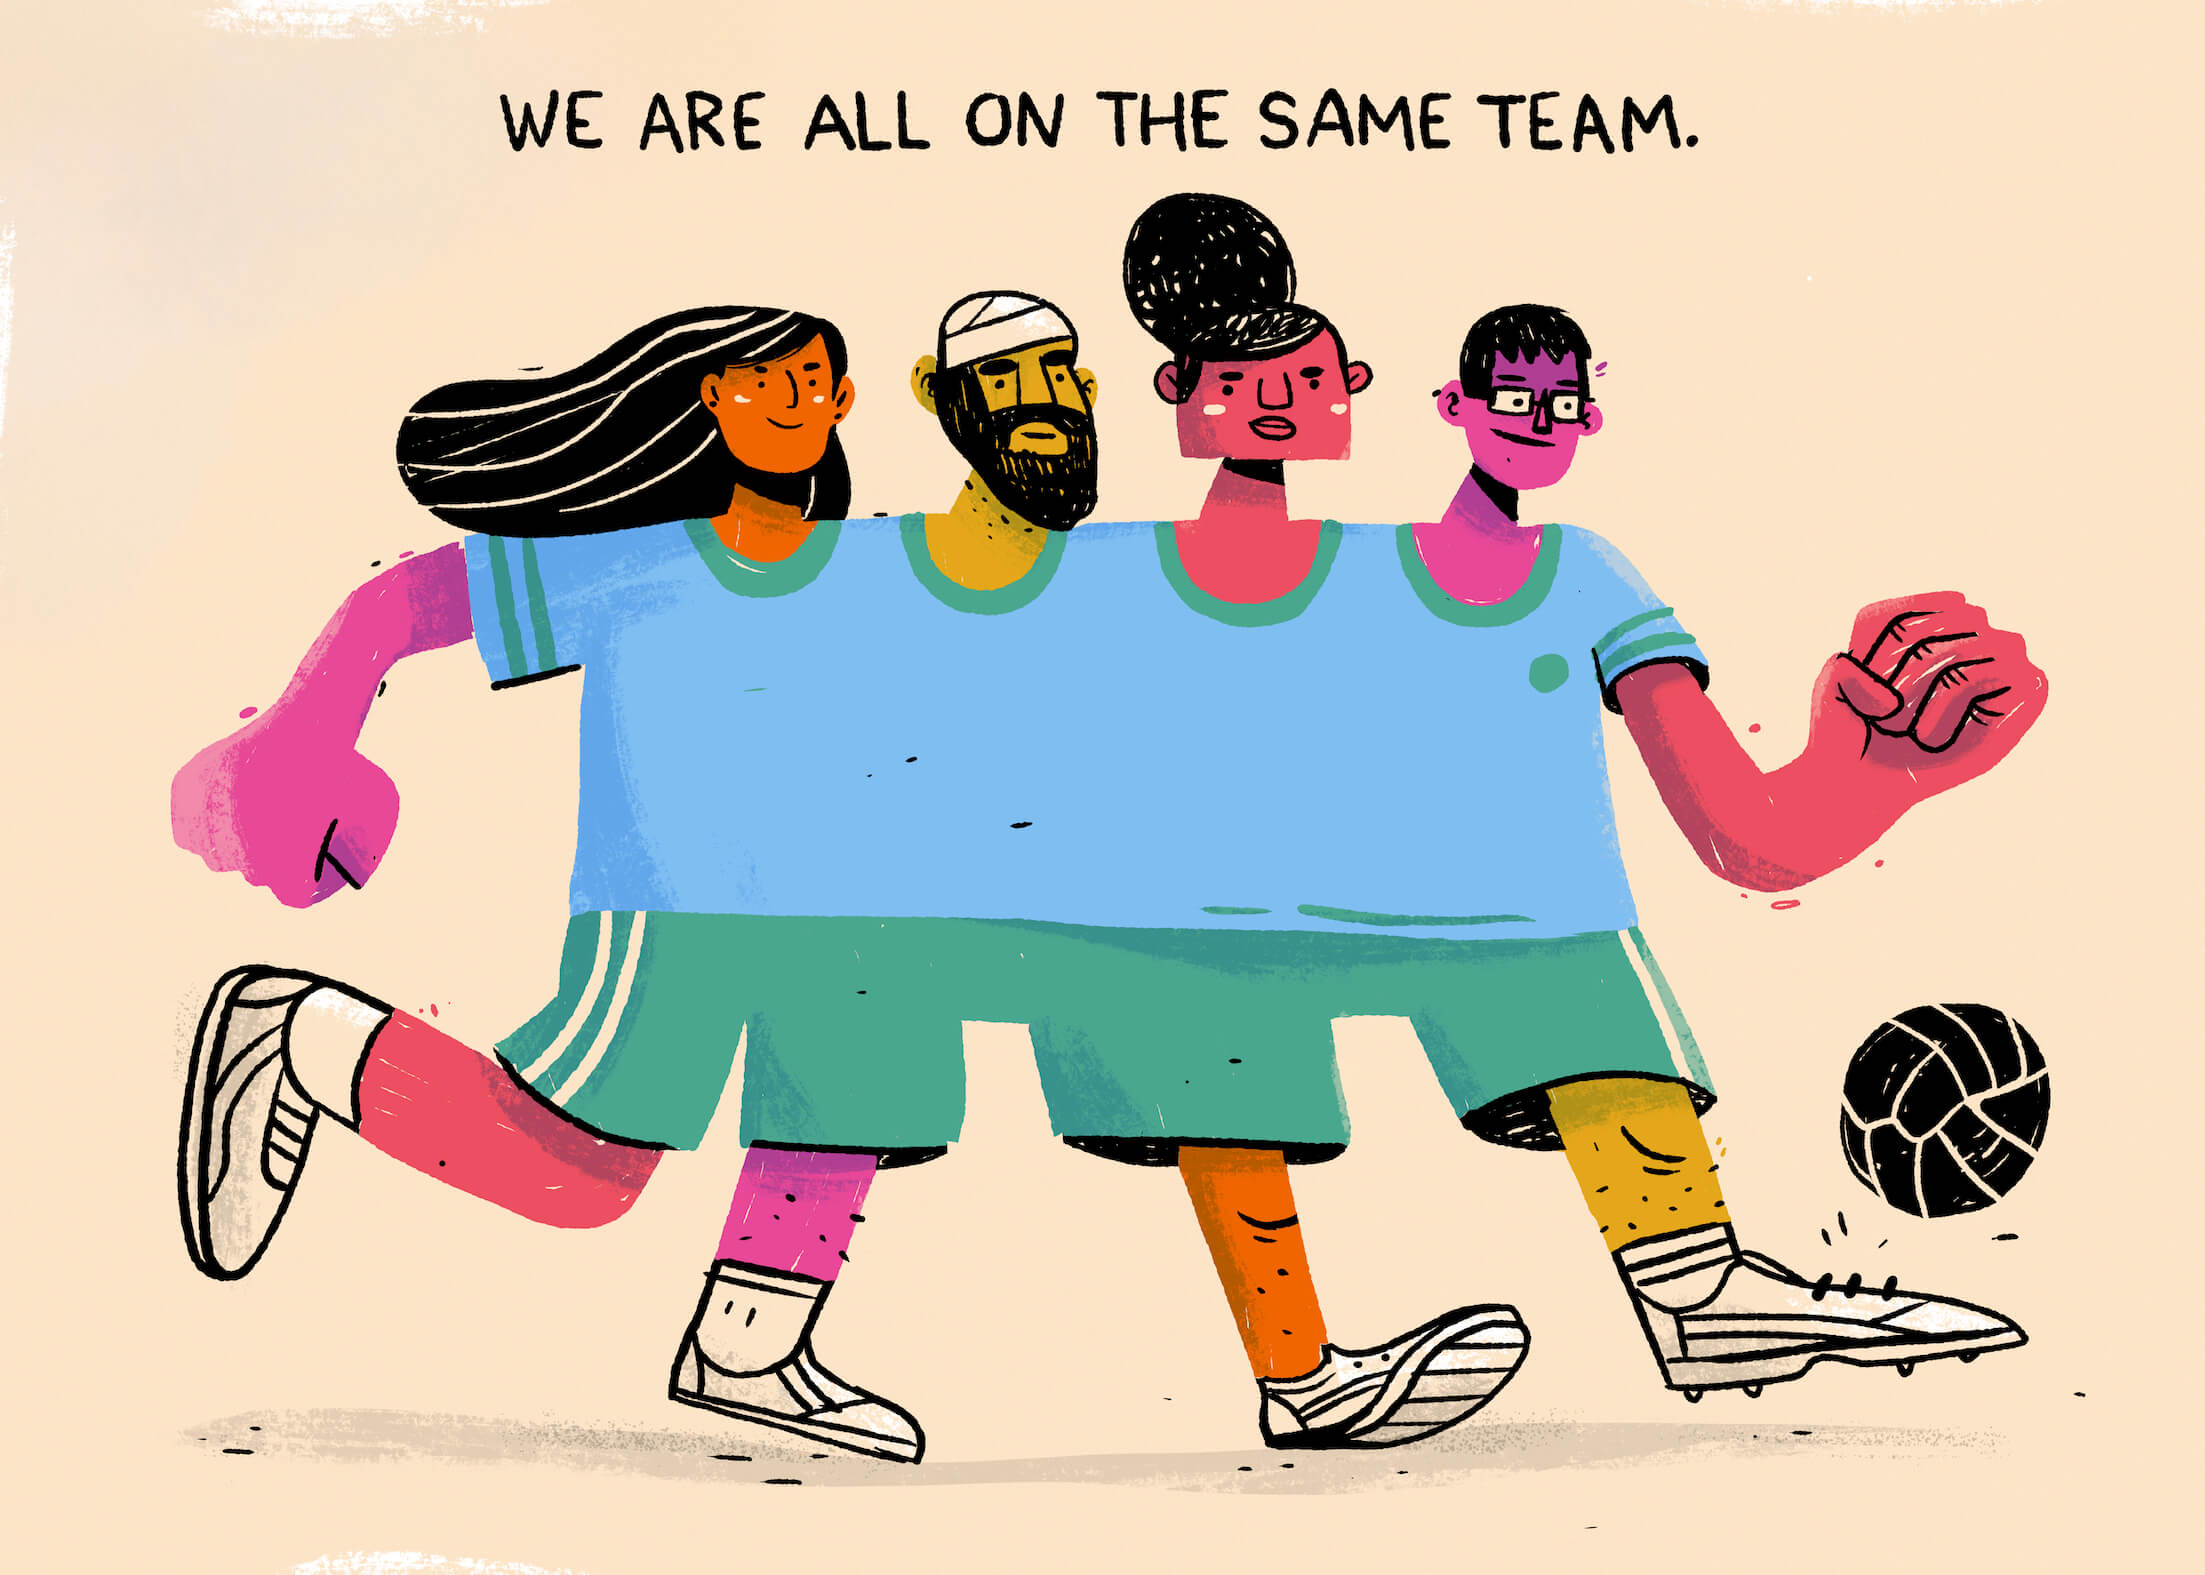 We Are All On The Same Team main image